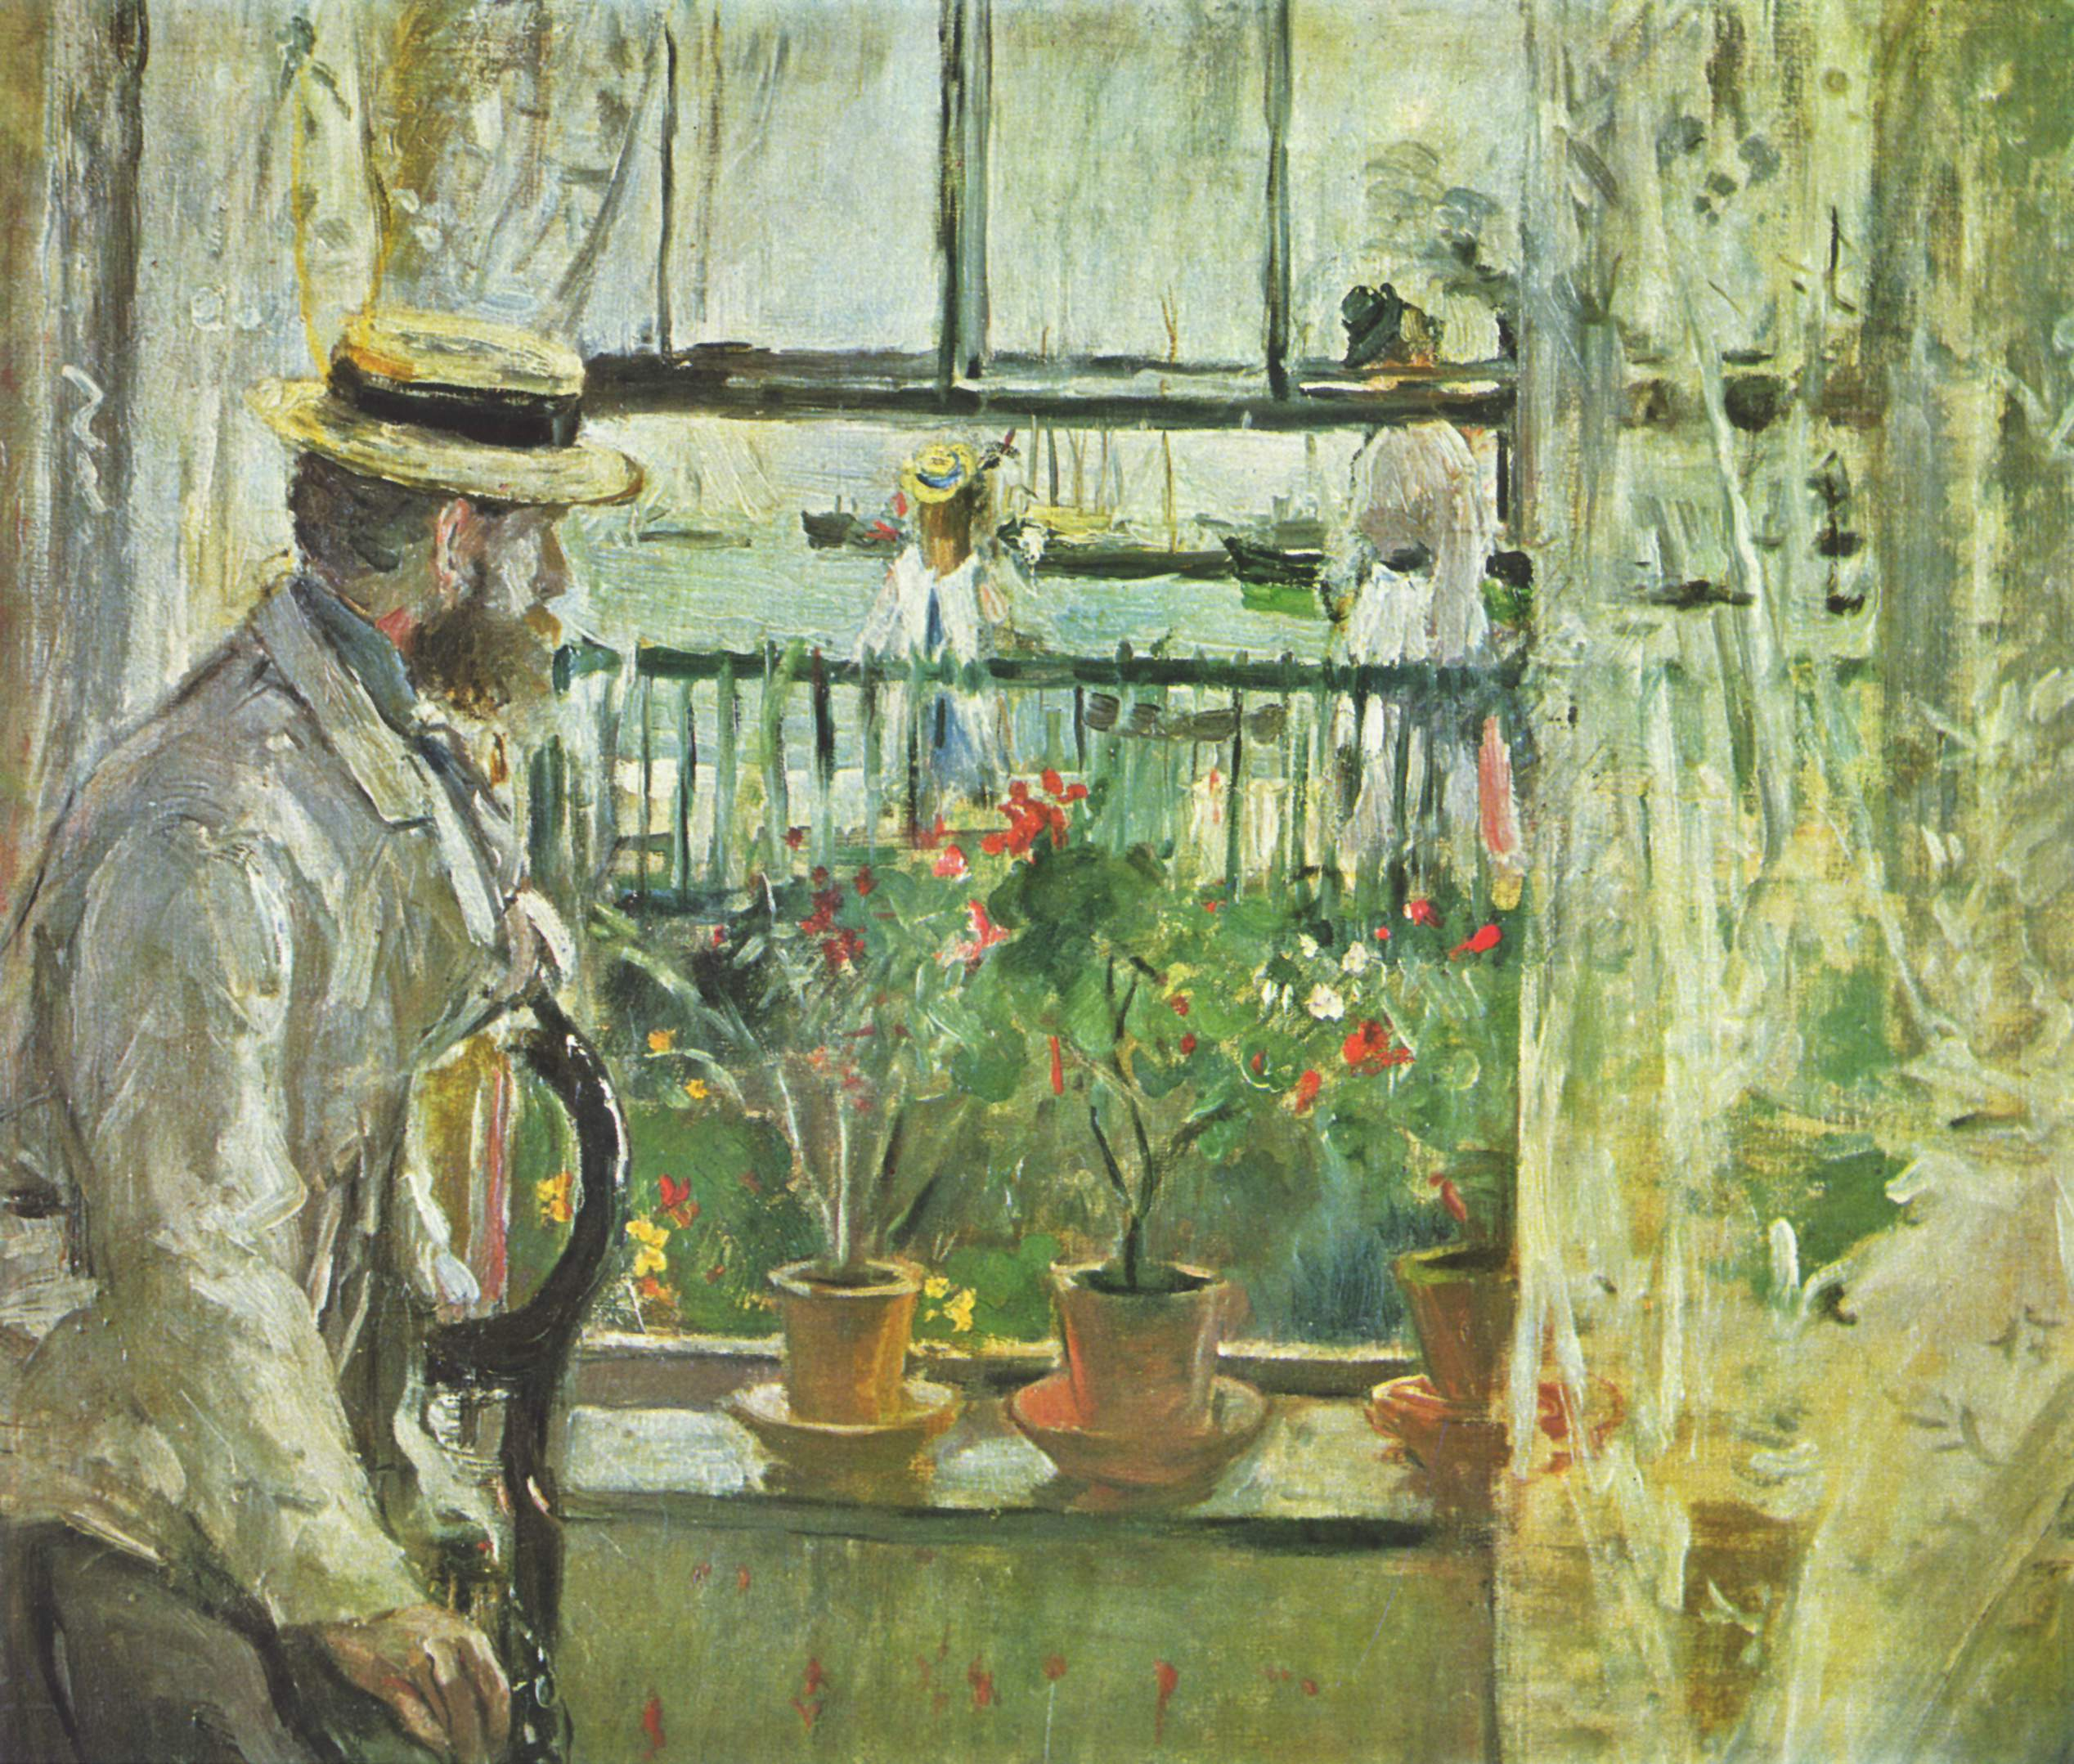 https://upload.wikimedia.org/wikipedia/commons/6/6b/Berthe_Morisot_002.jpg